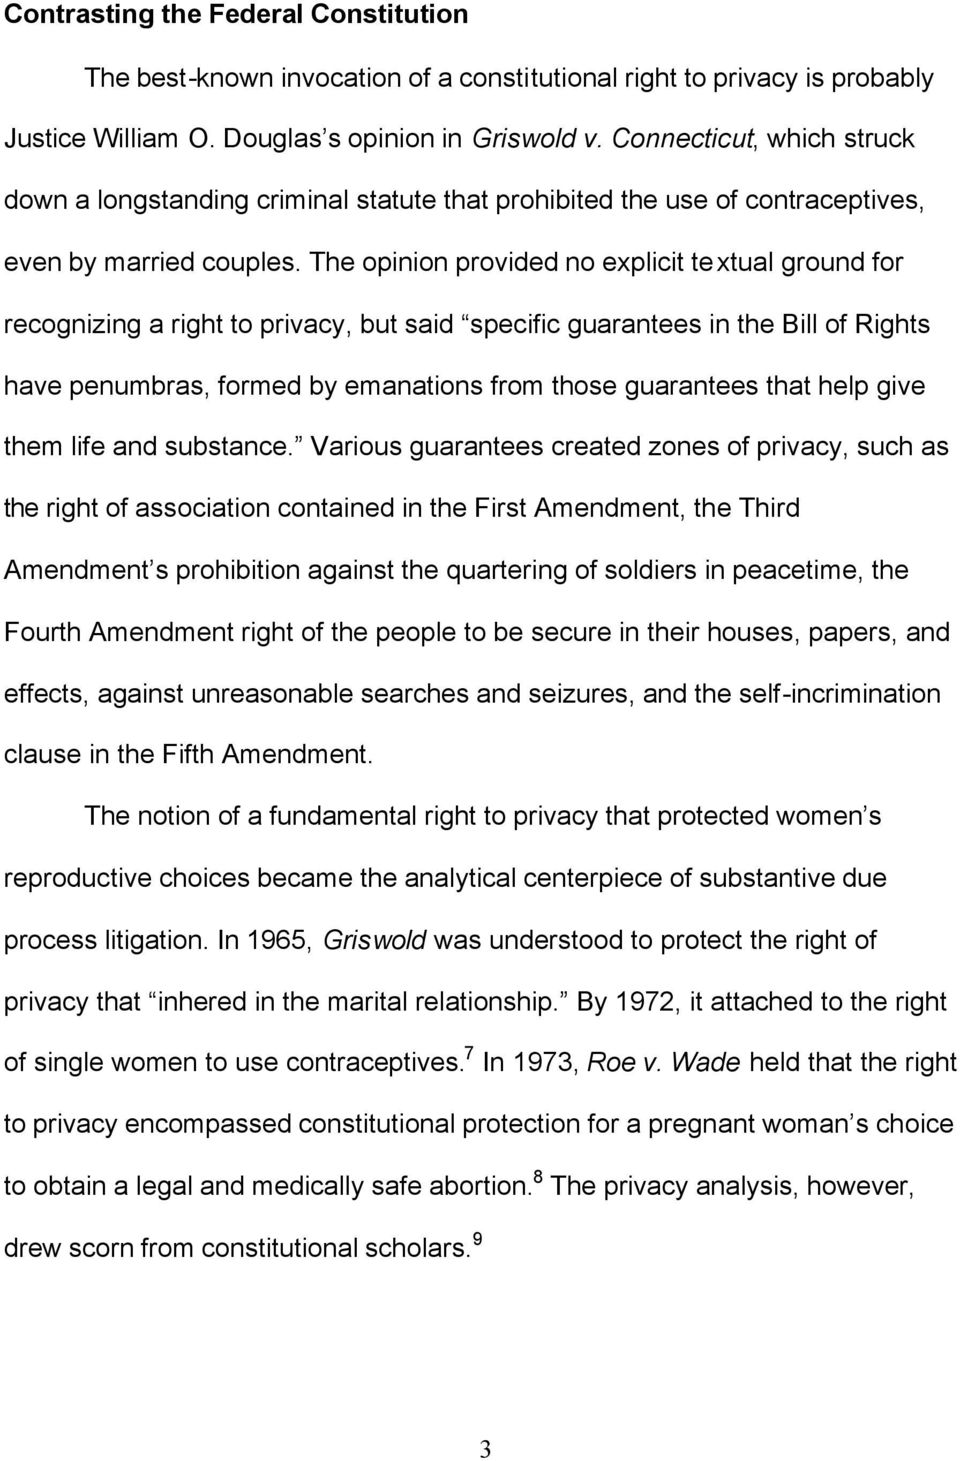 The opinion provided no explicit textual ground for recognizing a right to privacy, but said specific guarantees in the Bill of Rights have penumbras, formed by emanations from those guarantees that